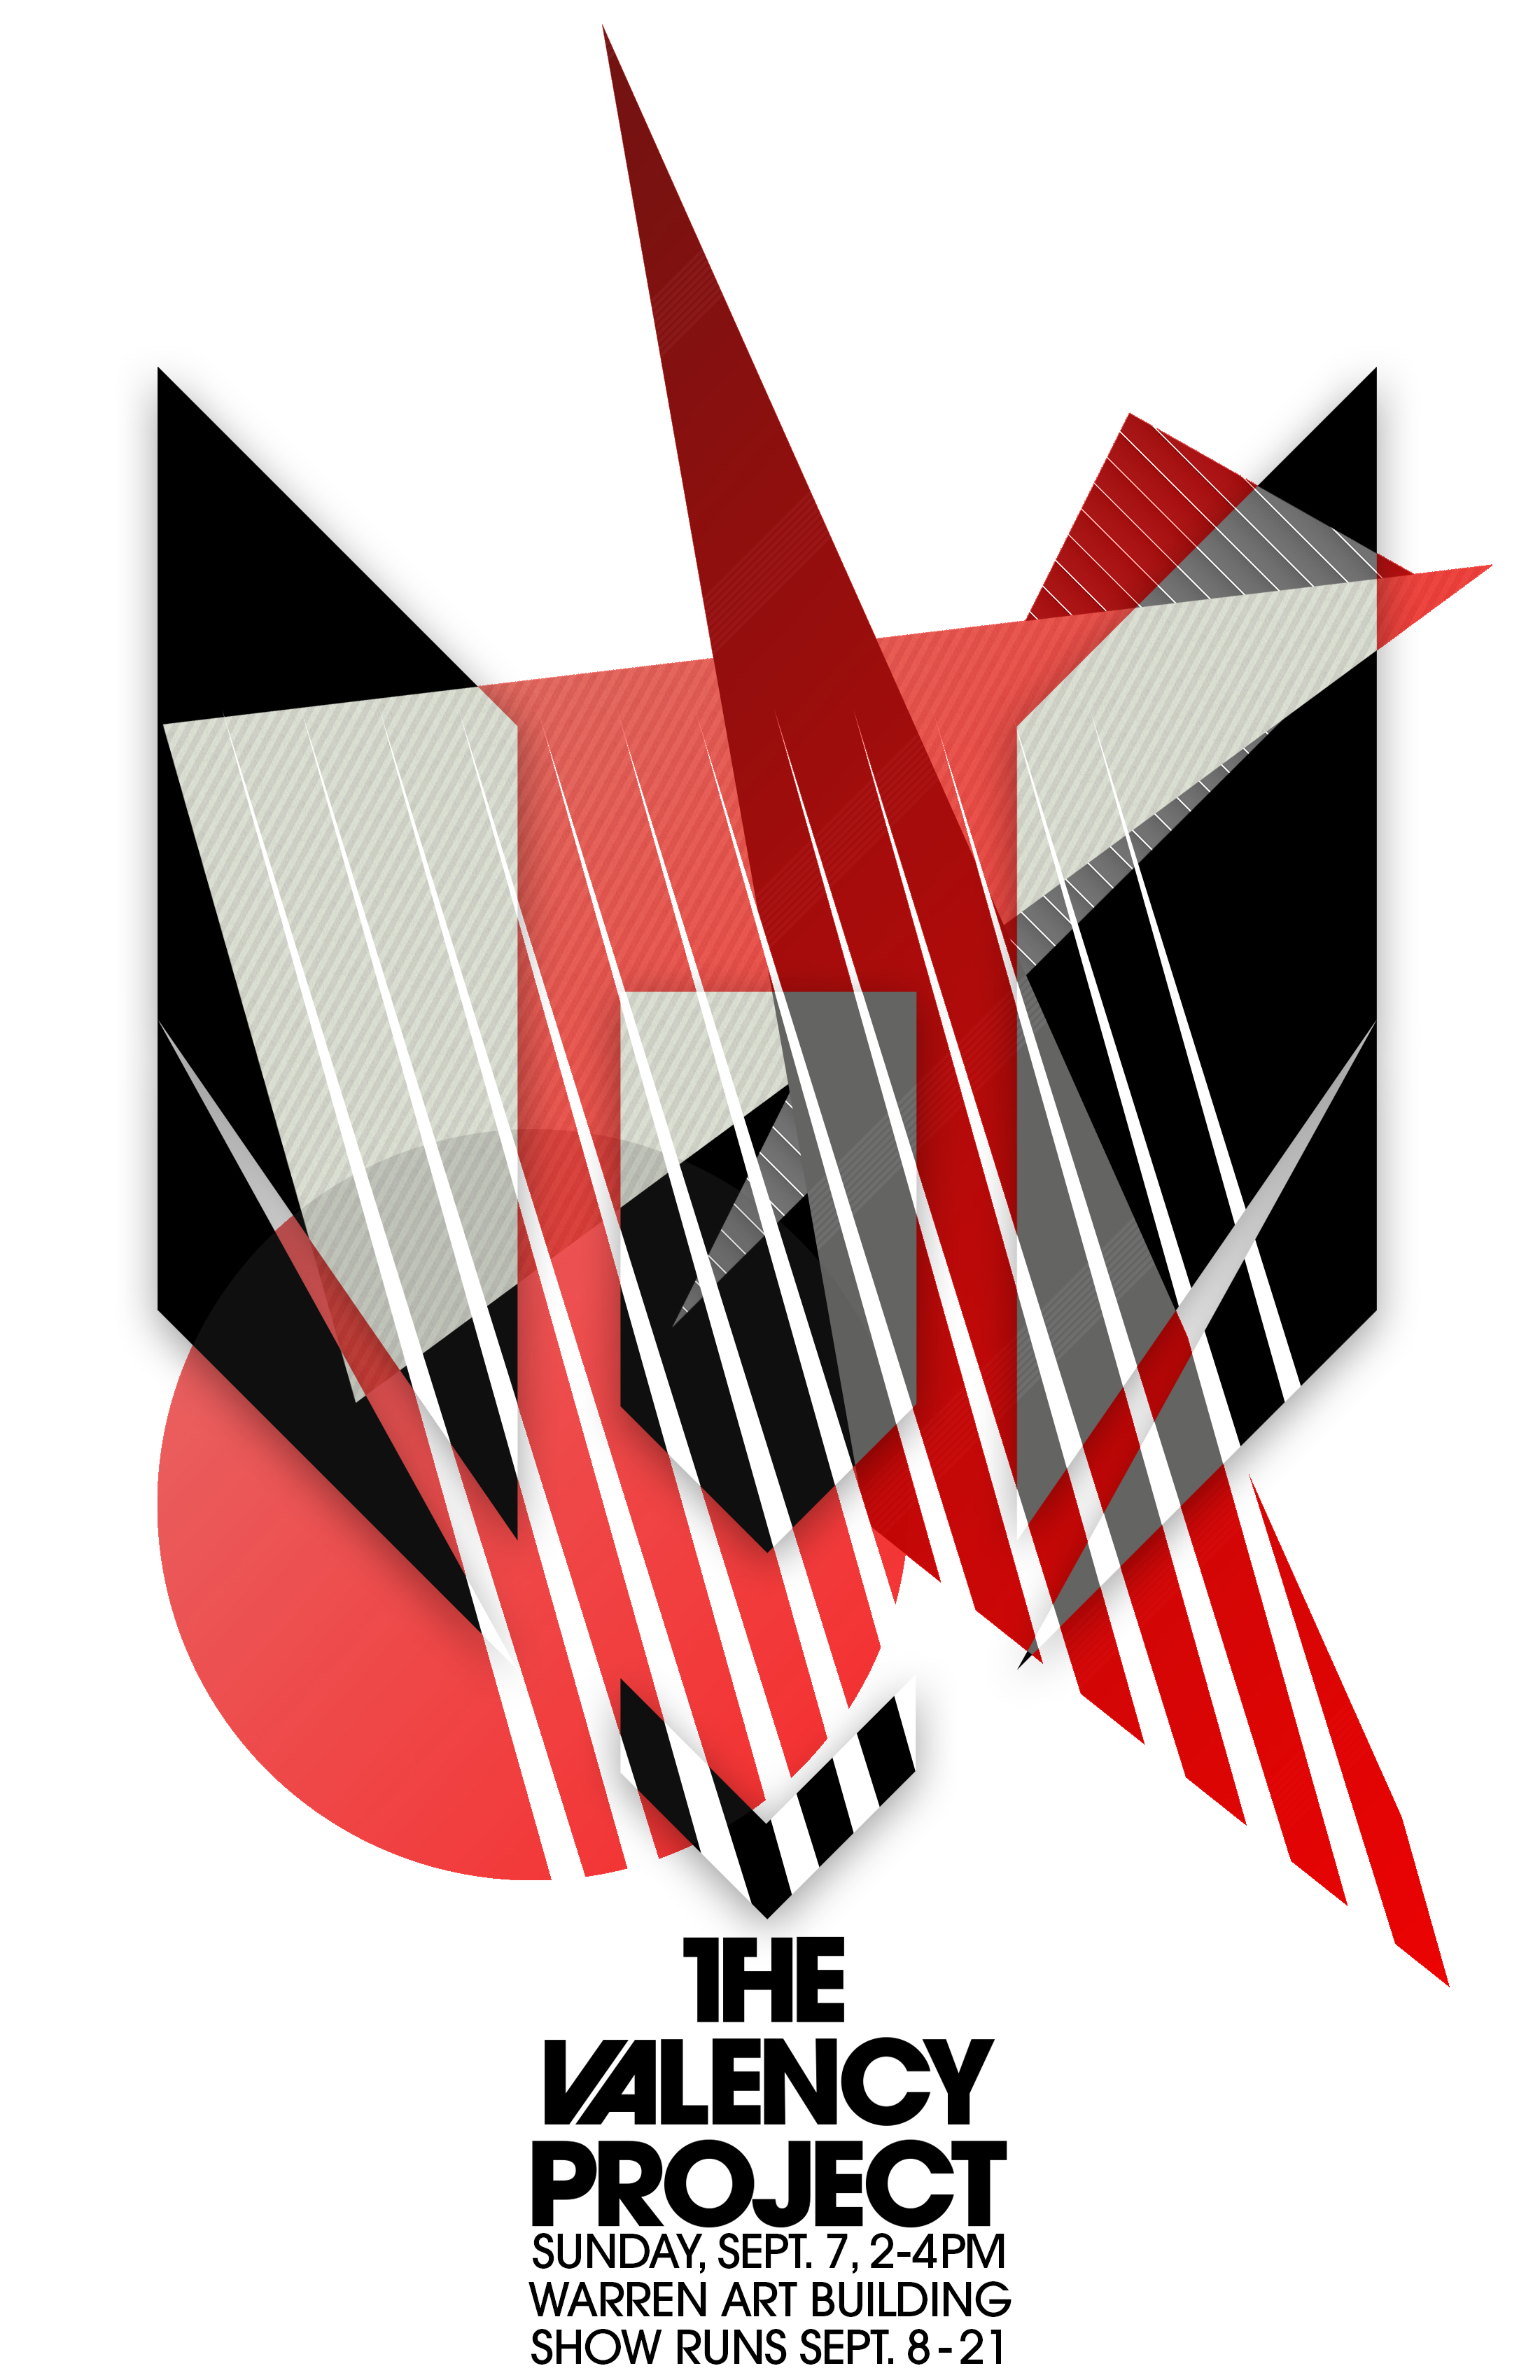 Abstract - Art Building (Warren) - An abstract take on the Valency logo